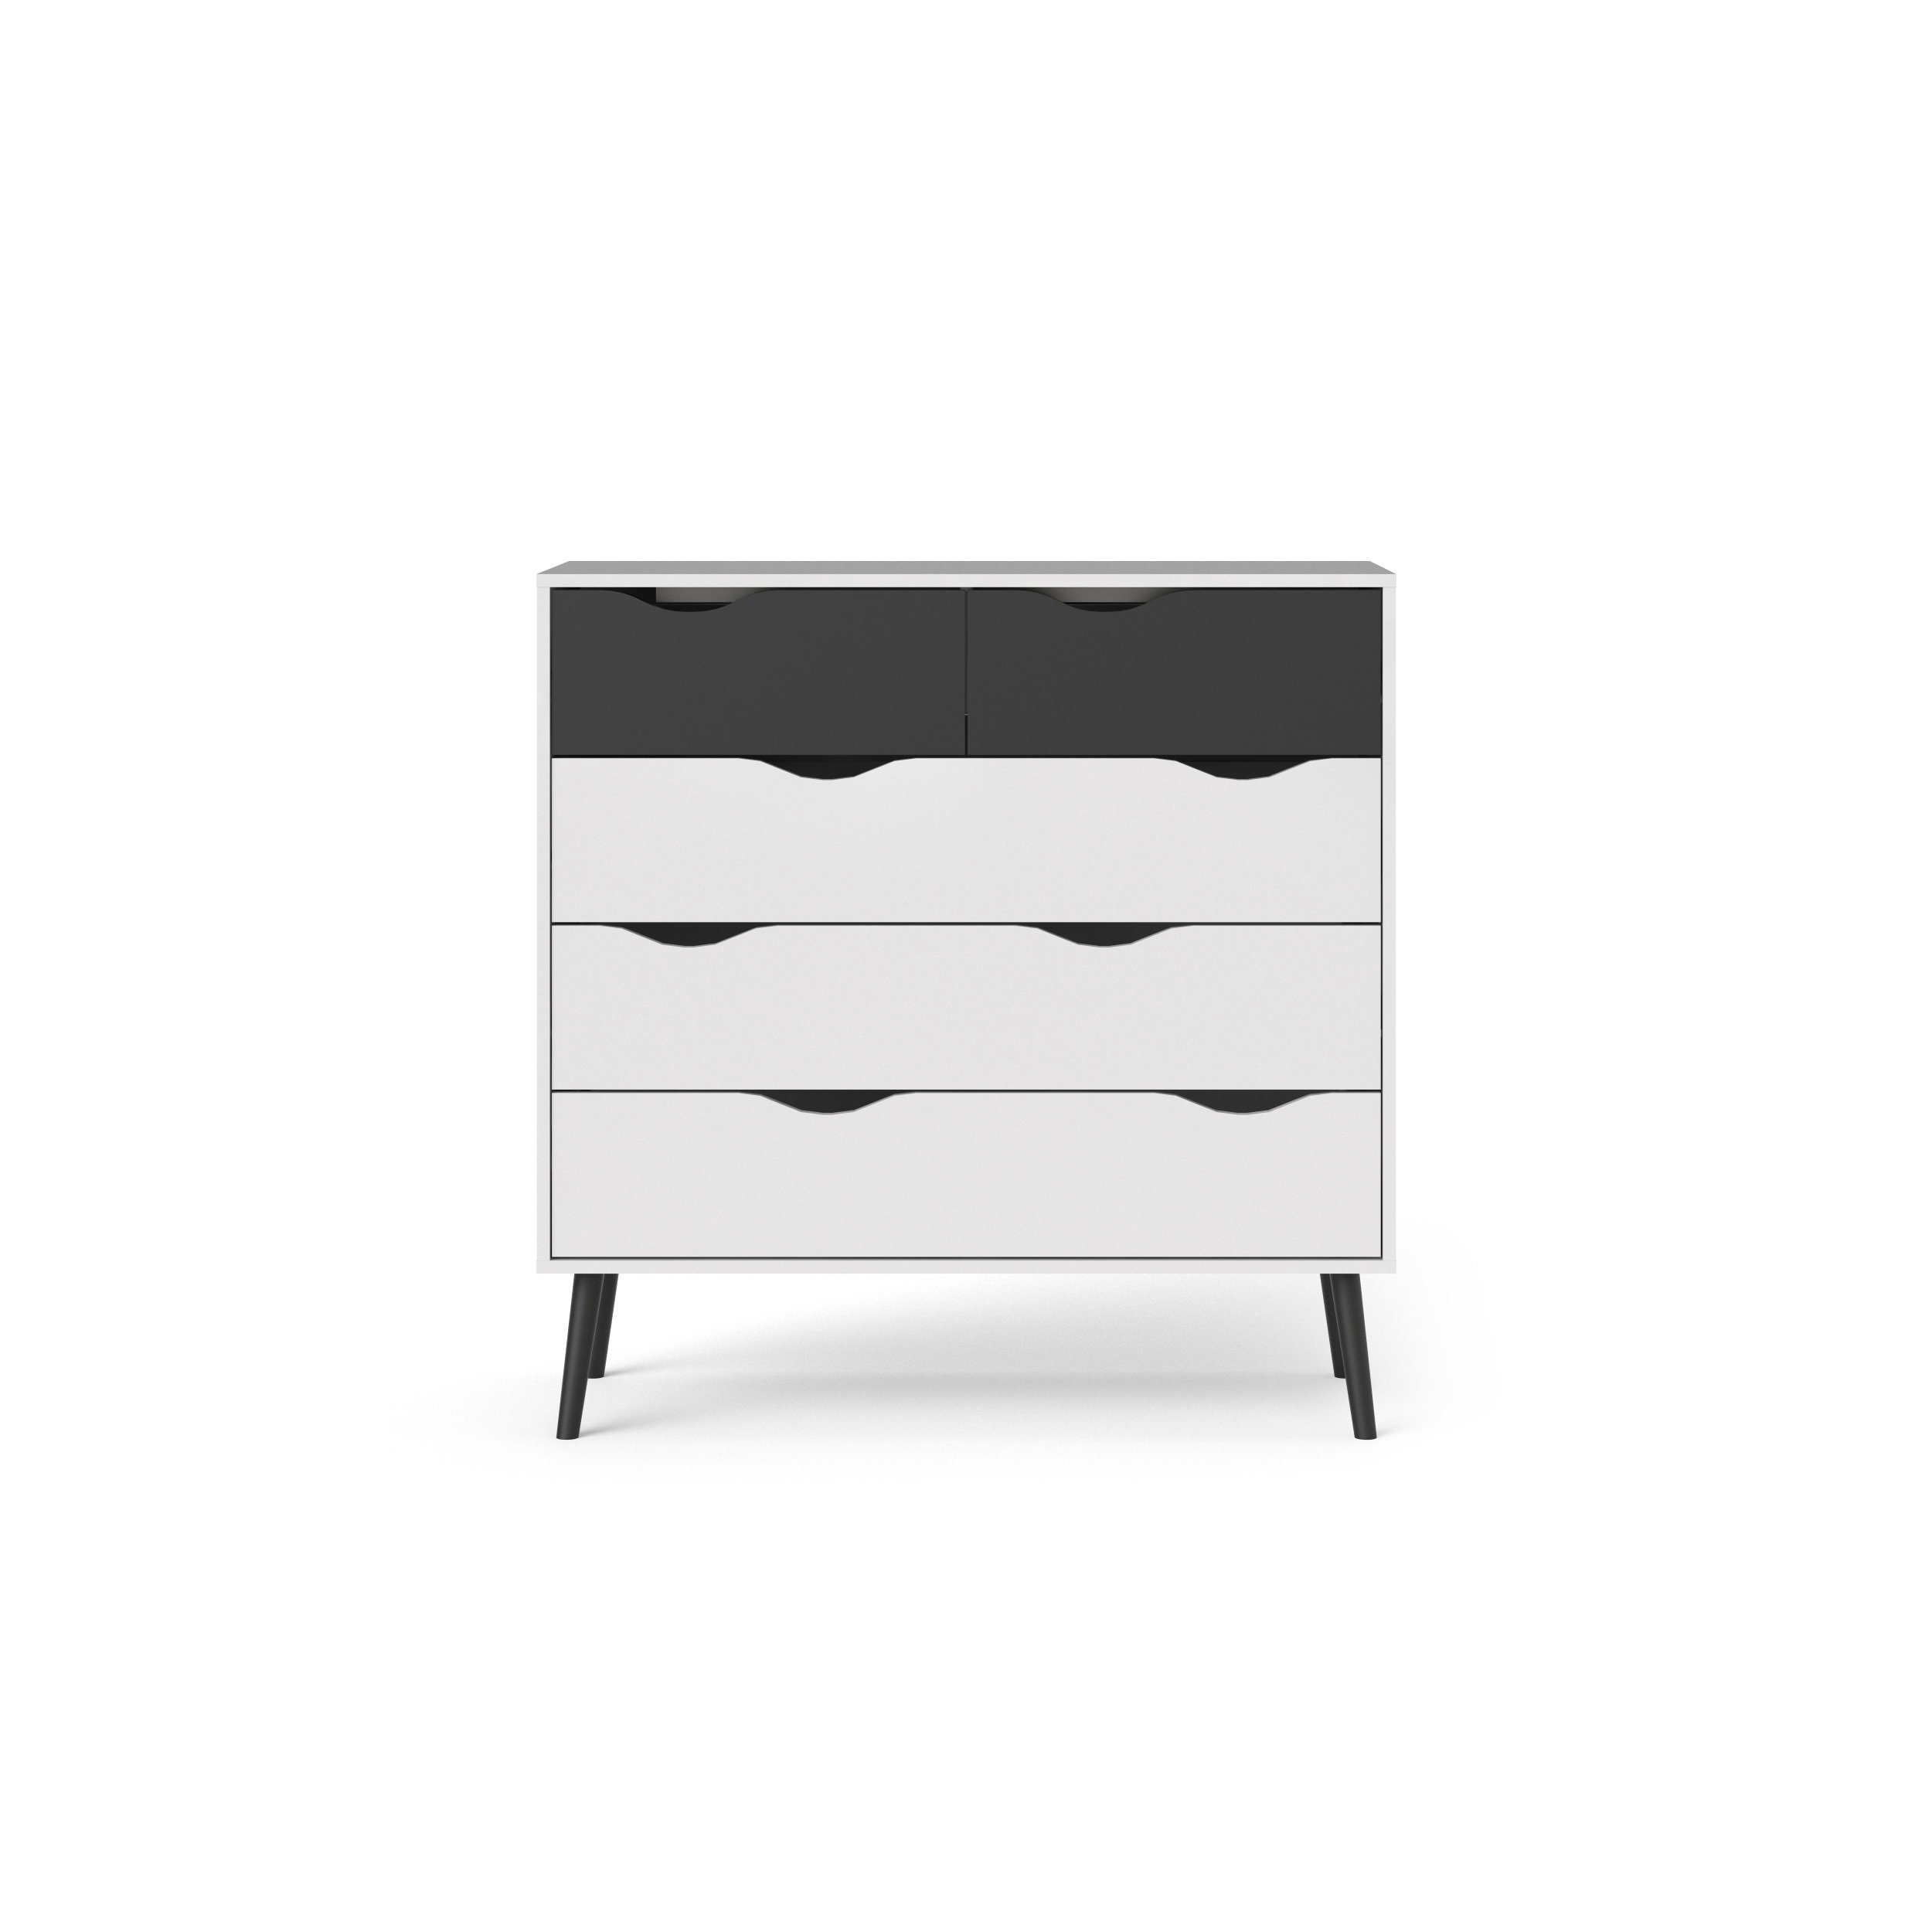 Tvilum 7545649gm Diana 5 Drawer Chest, White/Black Matte